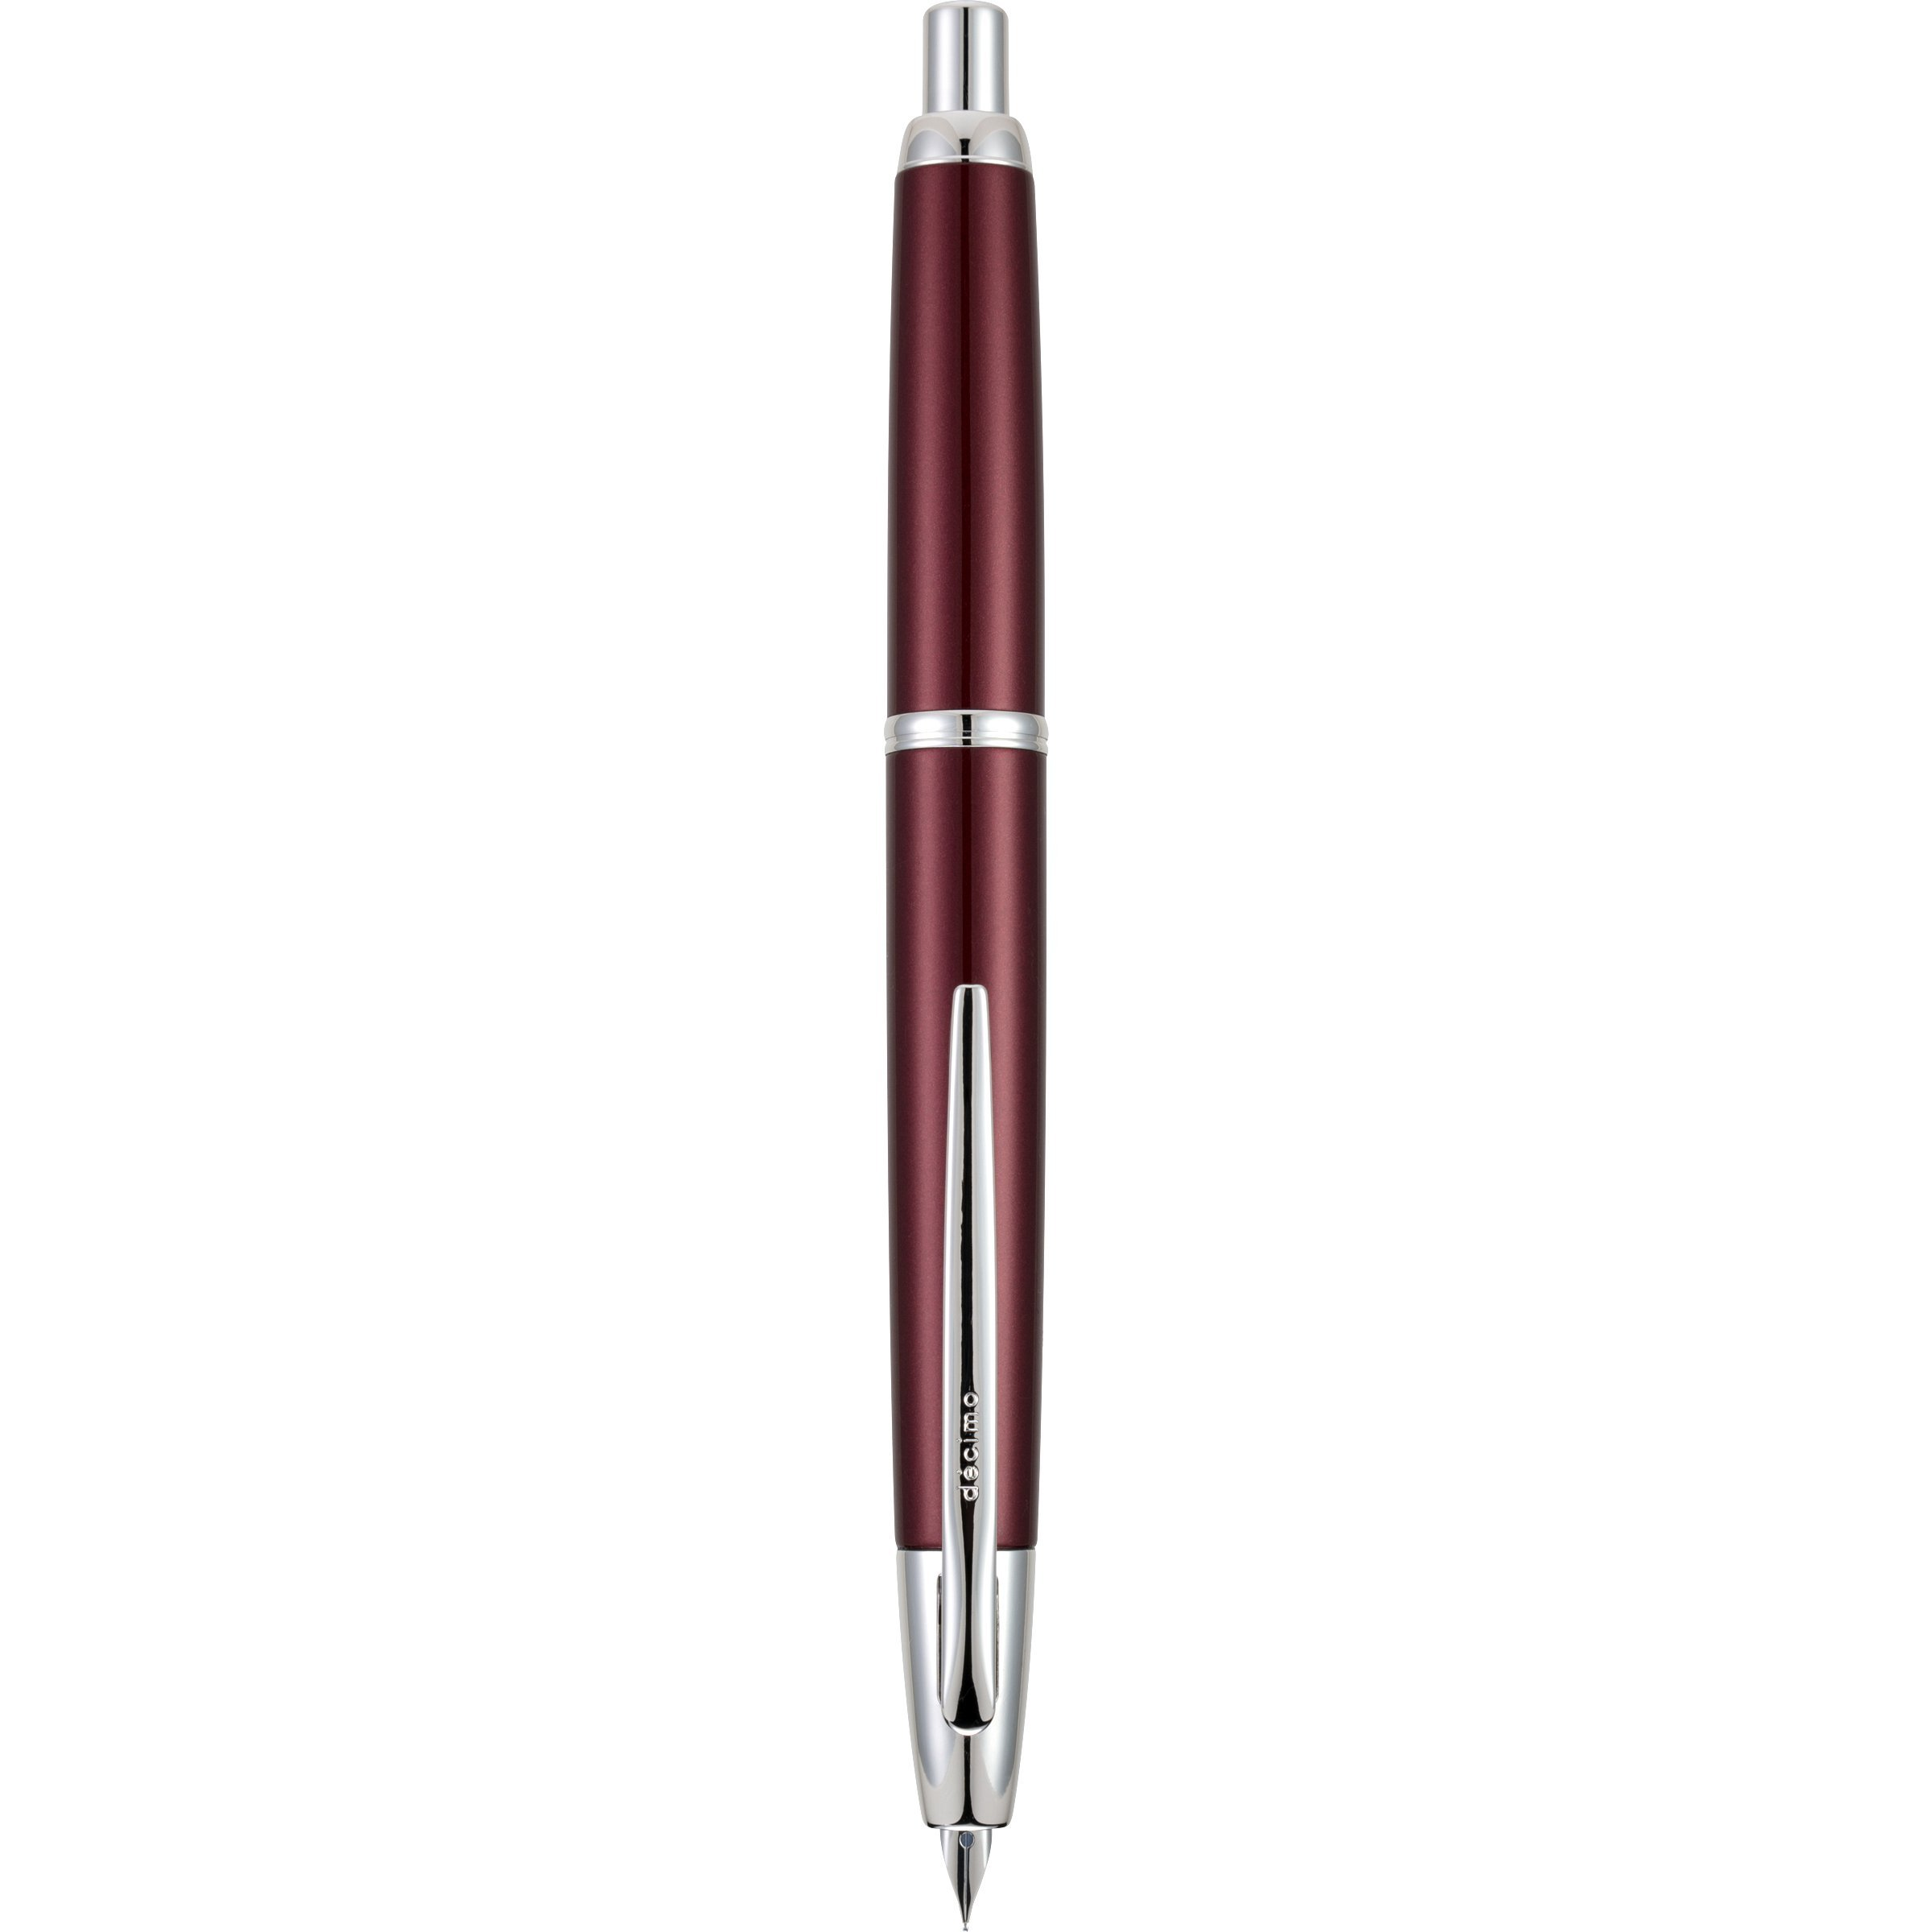 Pilot Vanishing Point Decimo Retractable Fountain Pen, Burgundy with Rhodium Accents, Extra Fine Nib (65334) by Pilot (Image #1)